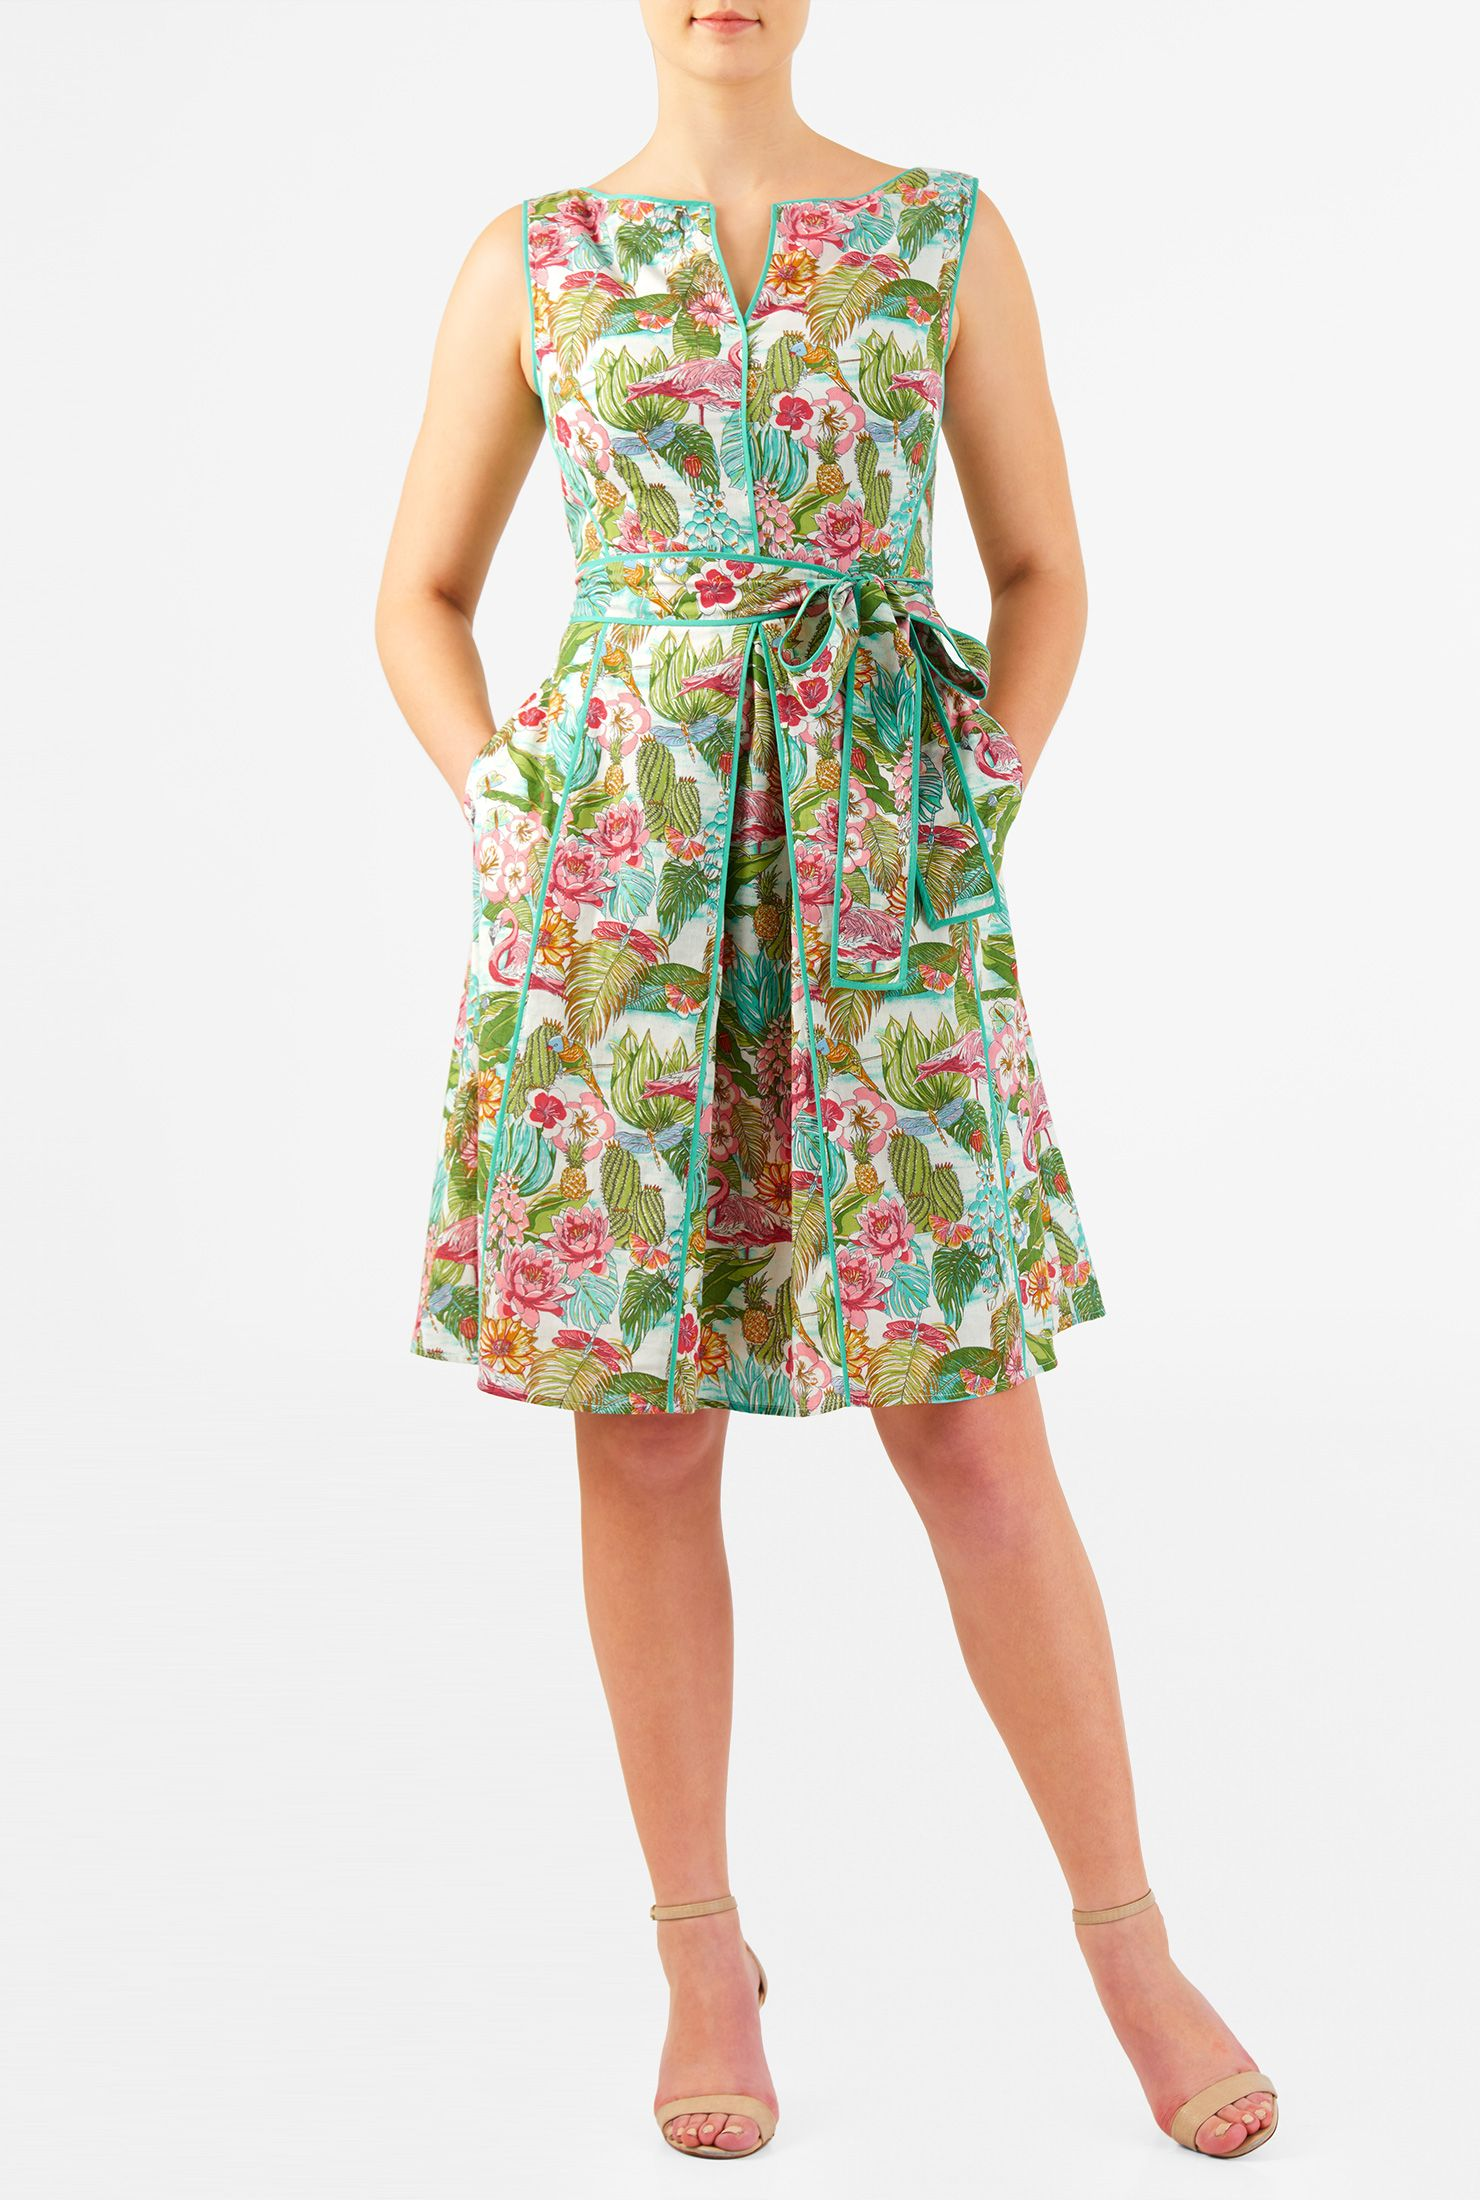 Our Tropical Summer Print Cotton Cambric Dress Is Styled With Solid Piped Trim That Highlights The Split Boat Nec Dresses Fashion Clothes Women Maxi Knit Dress [ 2200 x 1480 Pixel ]